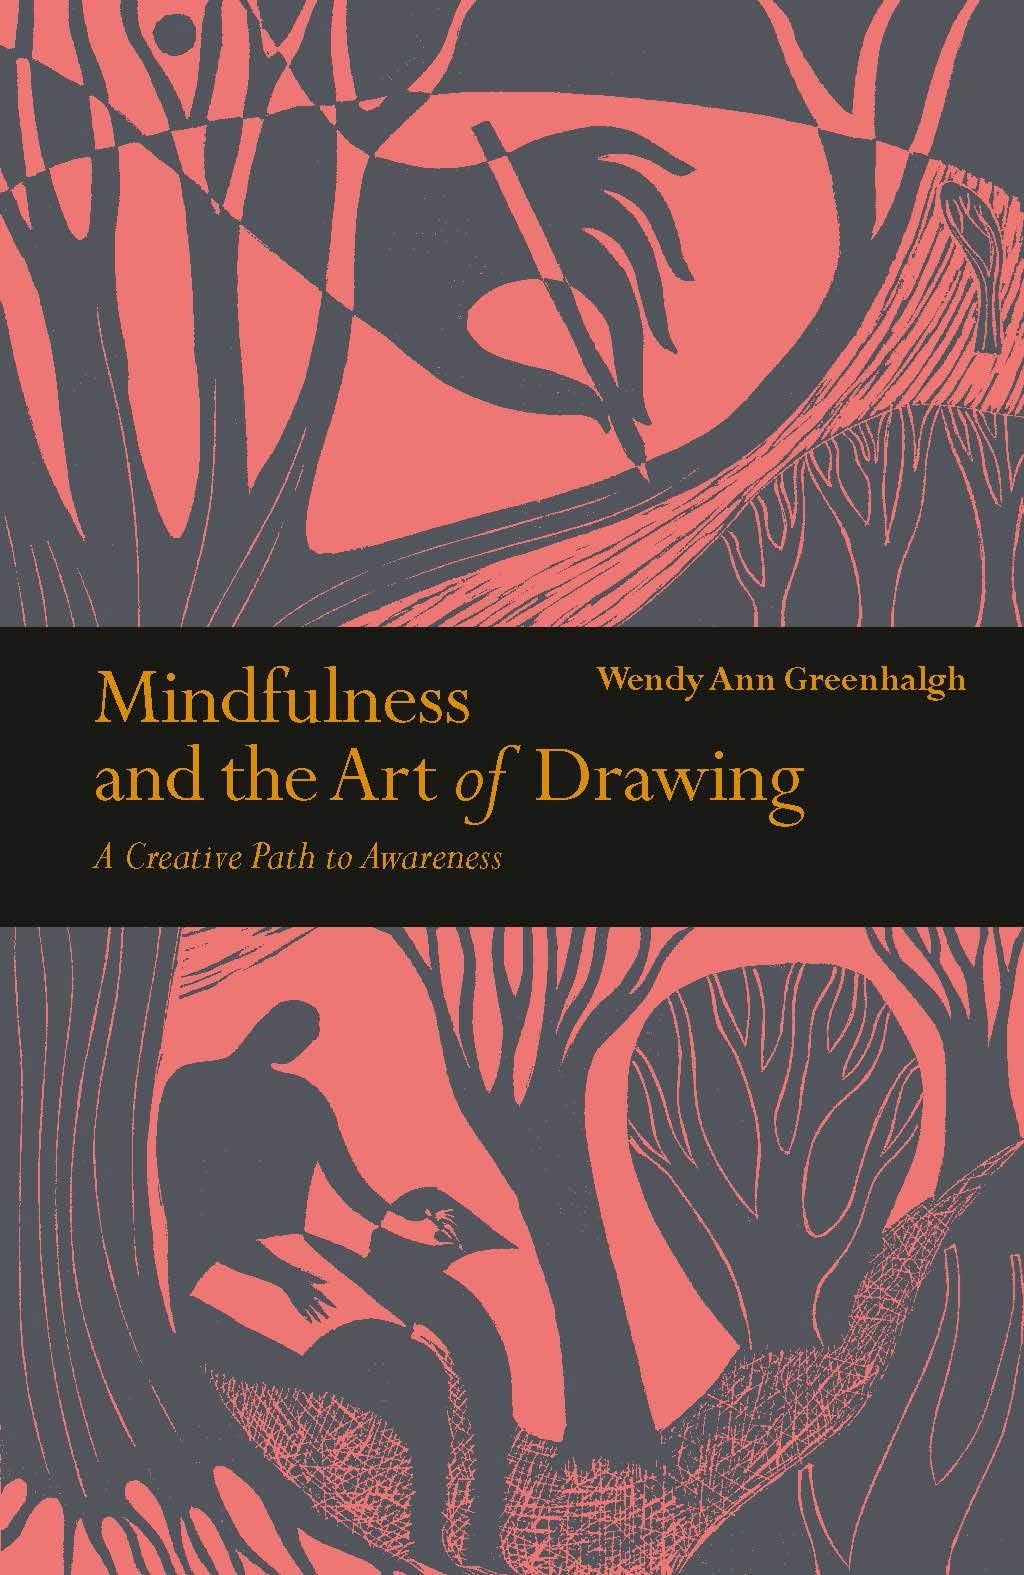 Mindfullness. The art of drawing